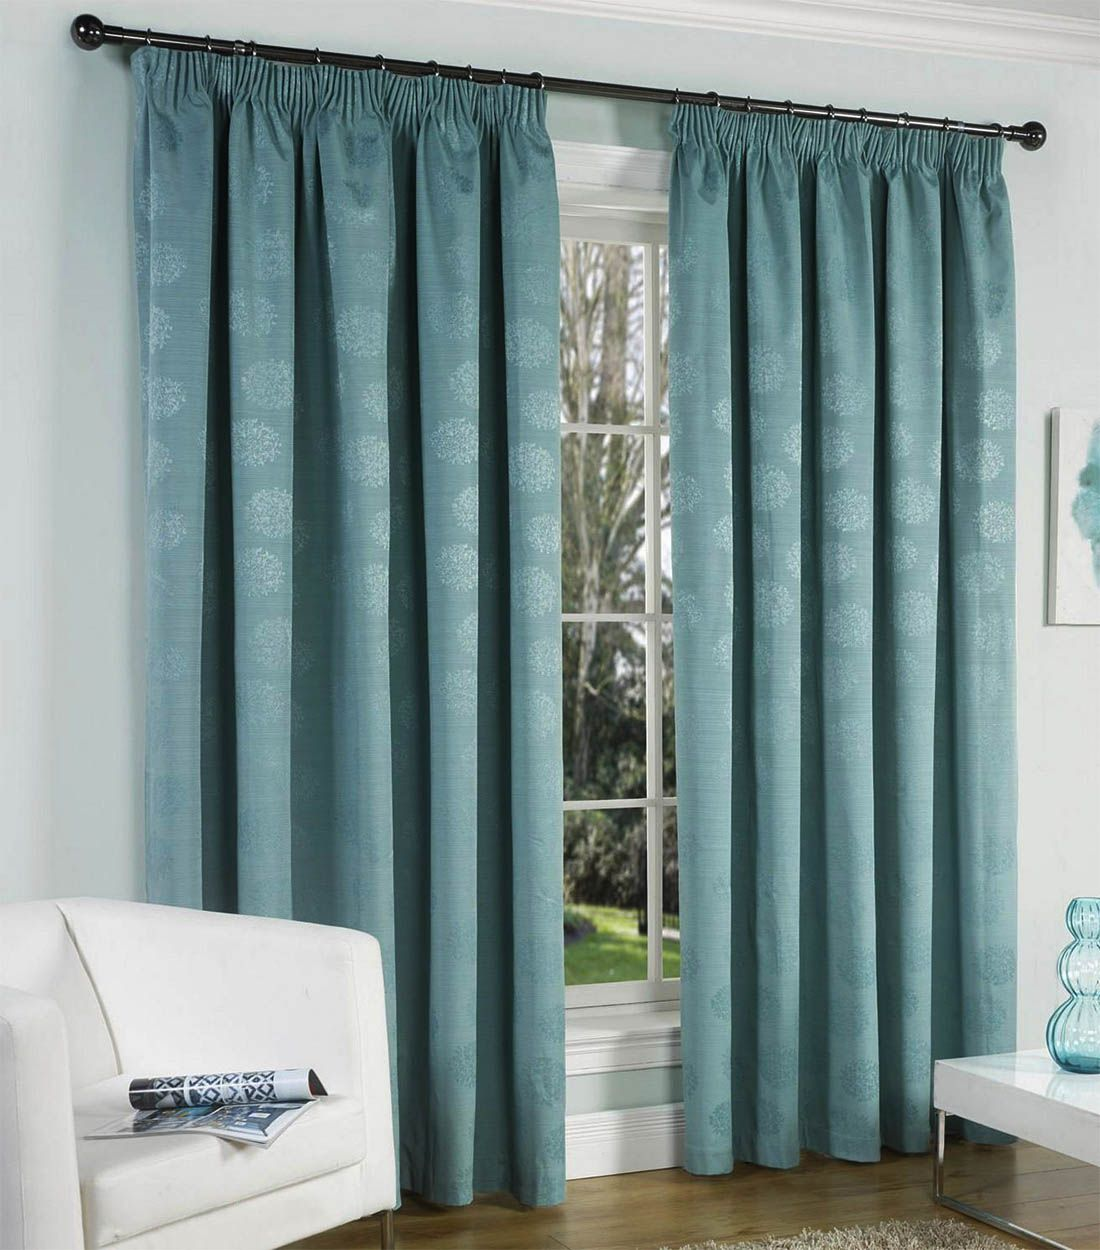 Curtain Models Blinds Latest Fashion Trends In 2018 Curtain